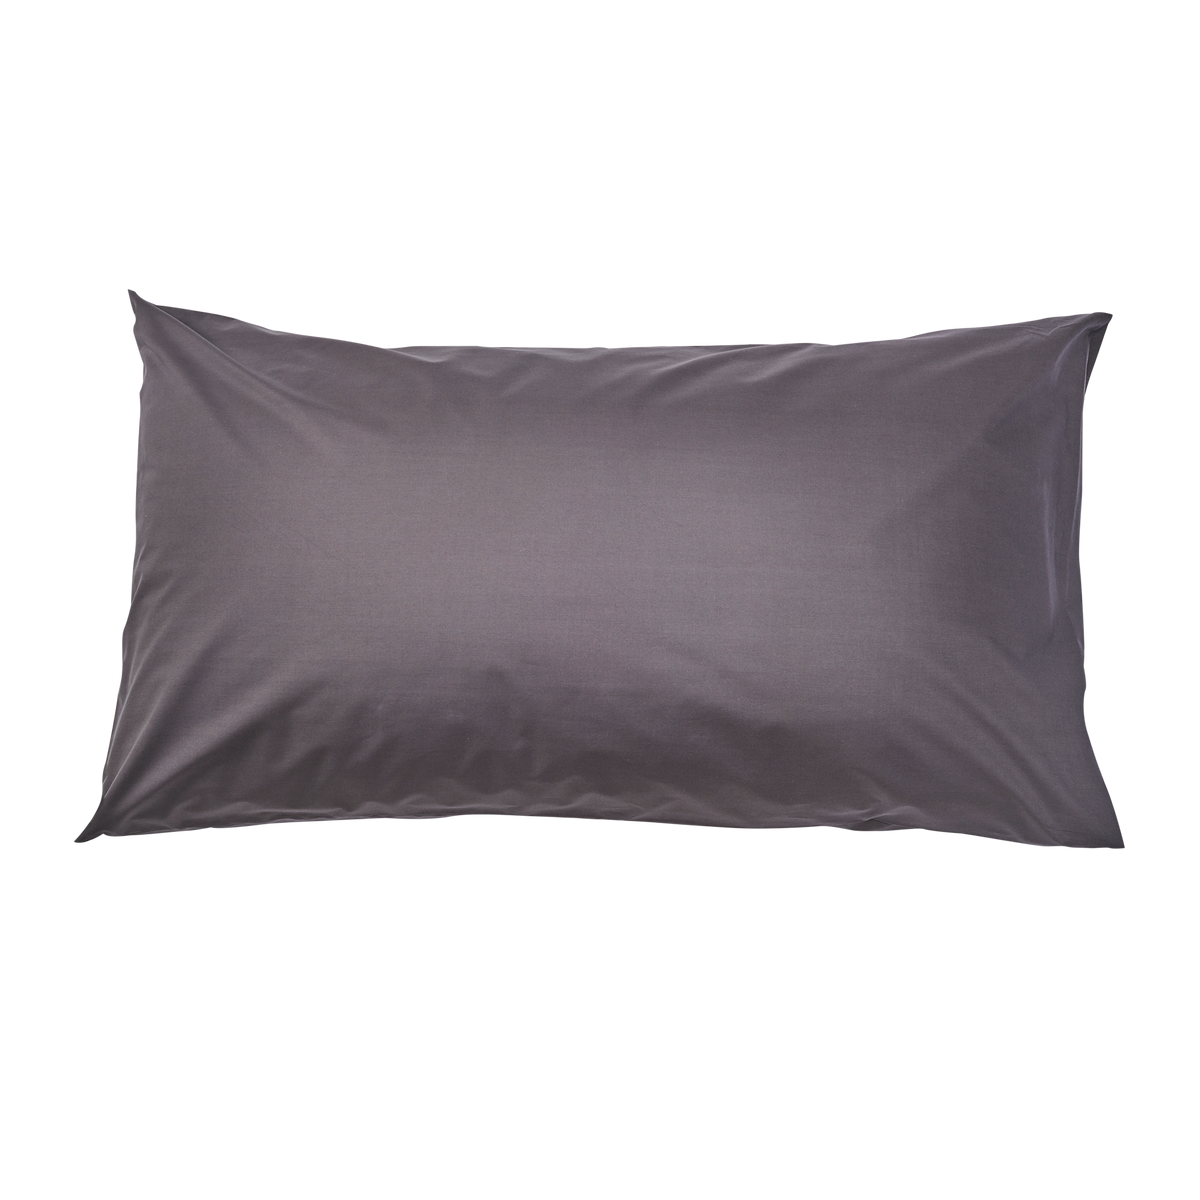 Essential Collection Percale Pillowcases in Charcoal | Skylark+Owl Linen Co.